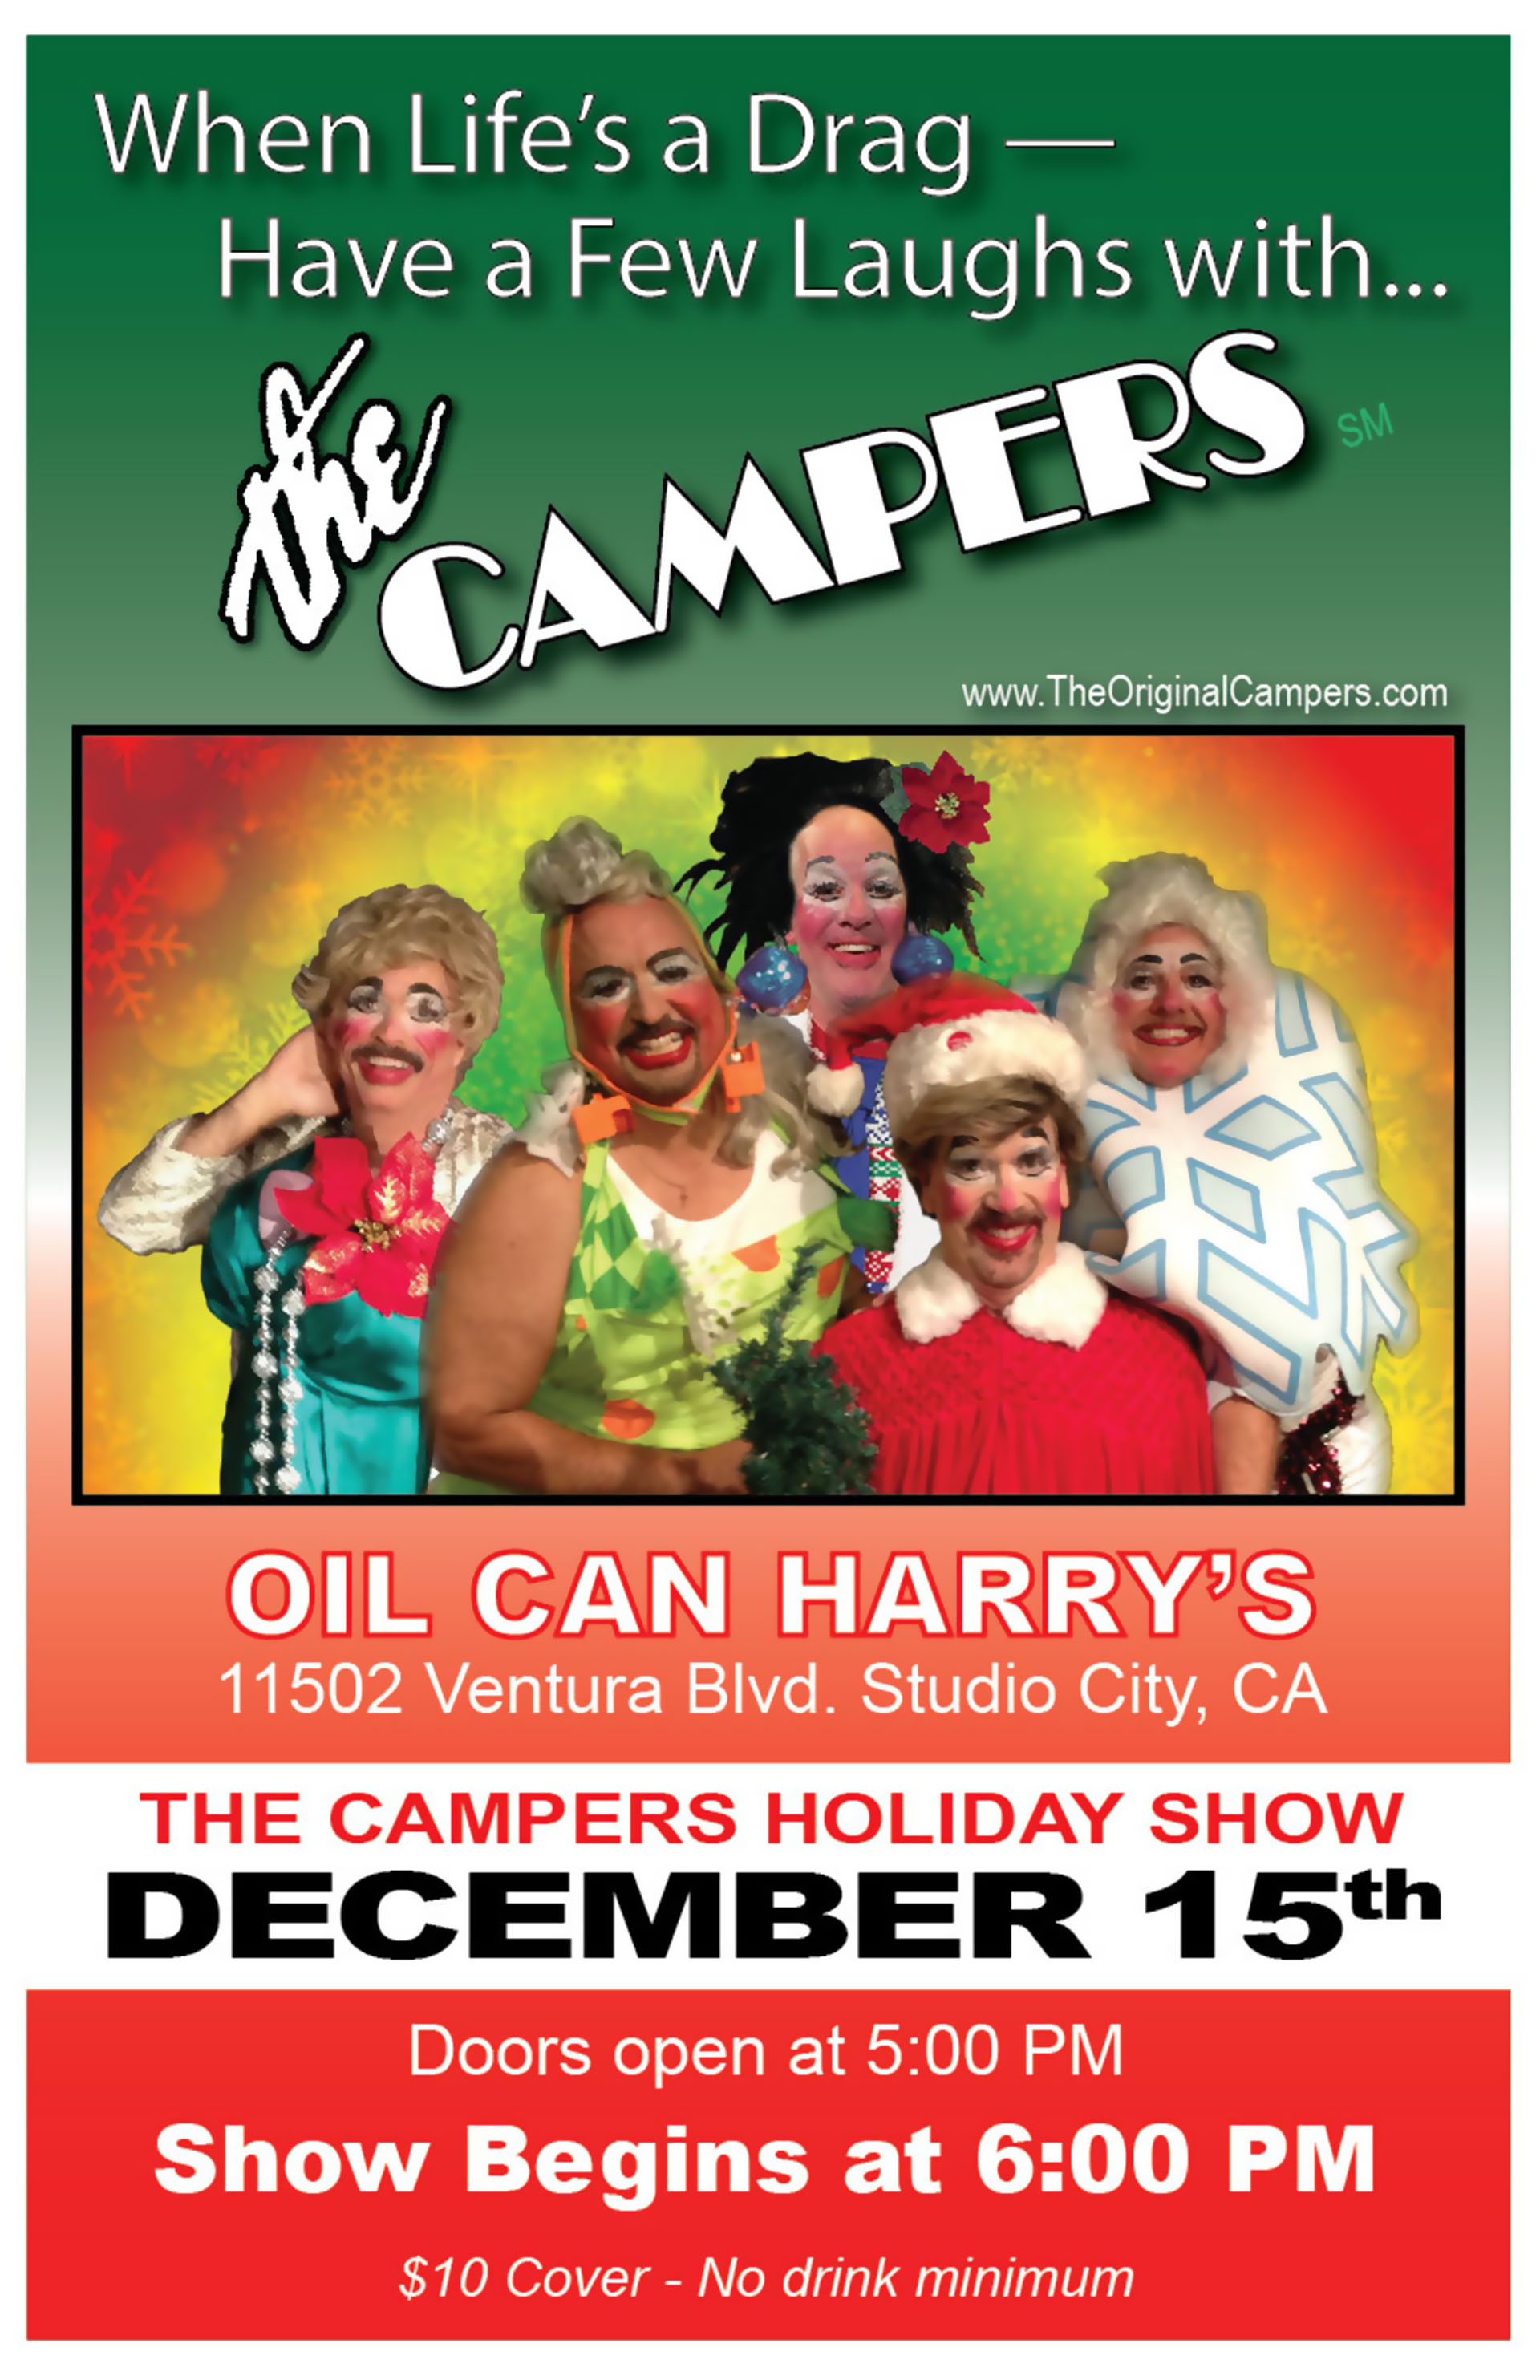 Oil Can Harry's Presents THE CAMPERS HOLIDAY SHOW: Sunday, December 15, 2019! Doors Open at 5:00 PM, and The Show Begins at 6:00 PM! $10 Cover - No drink minimum.